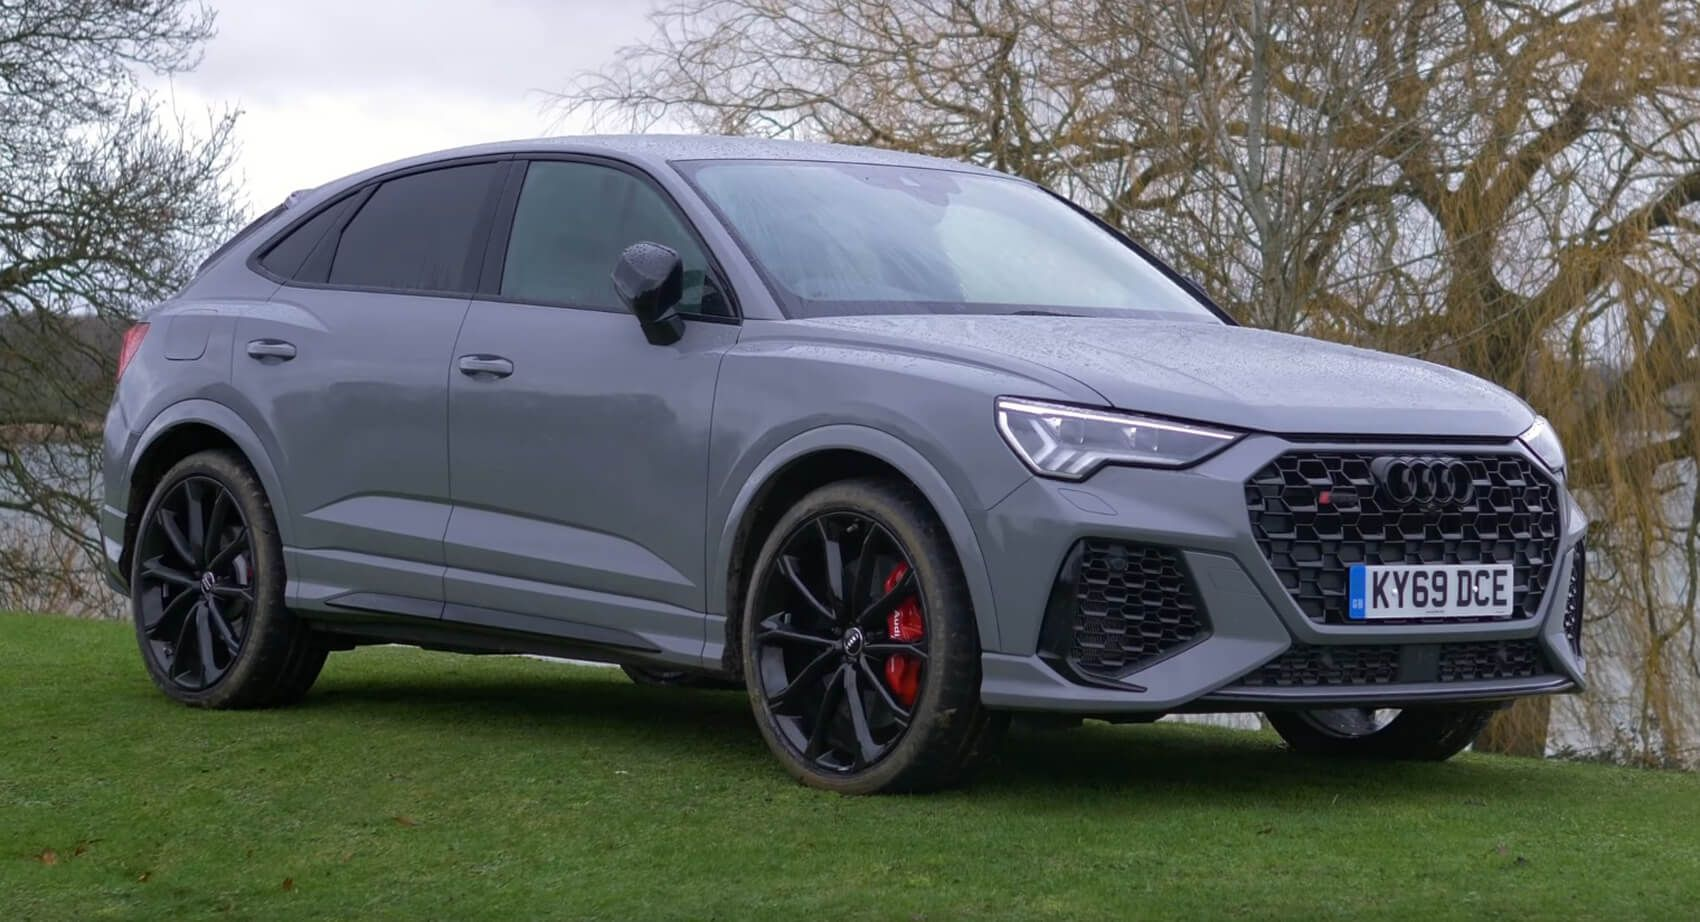 Turns Out There S A Lot To Like About The Audi Rs Q3 Sportback Carscoops In 2020 Audi Rs Audi Suv Cars